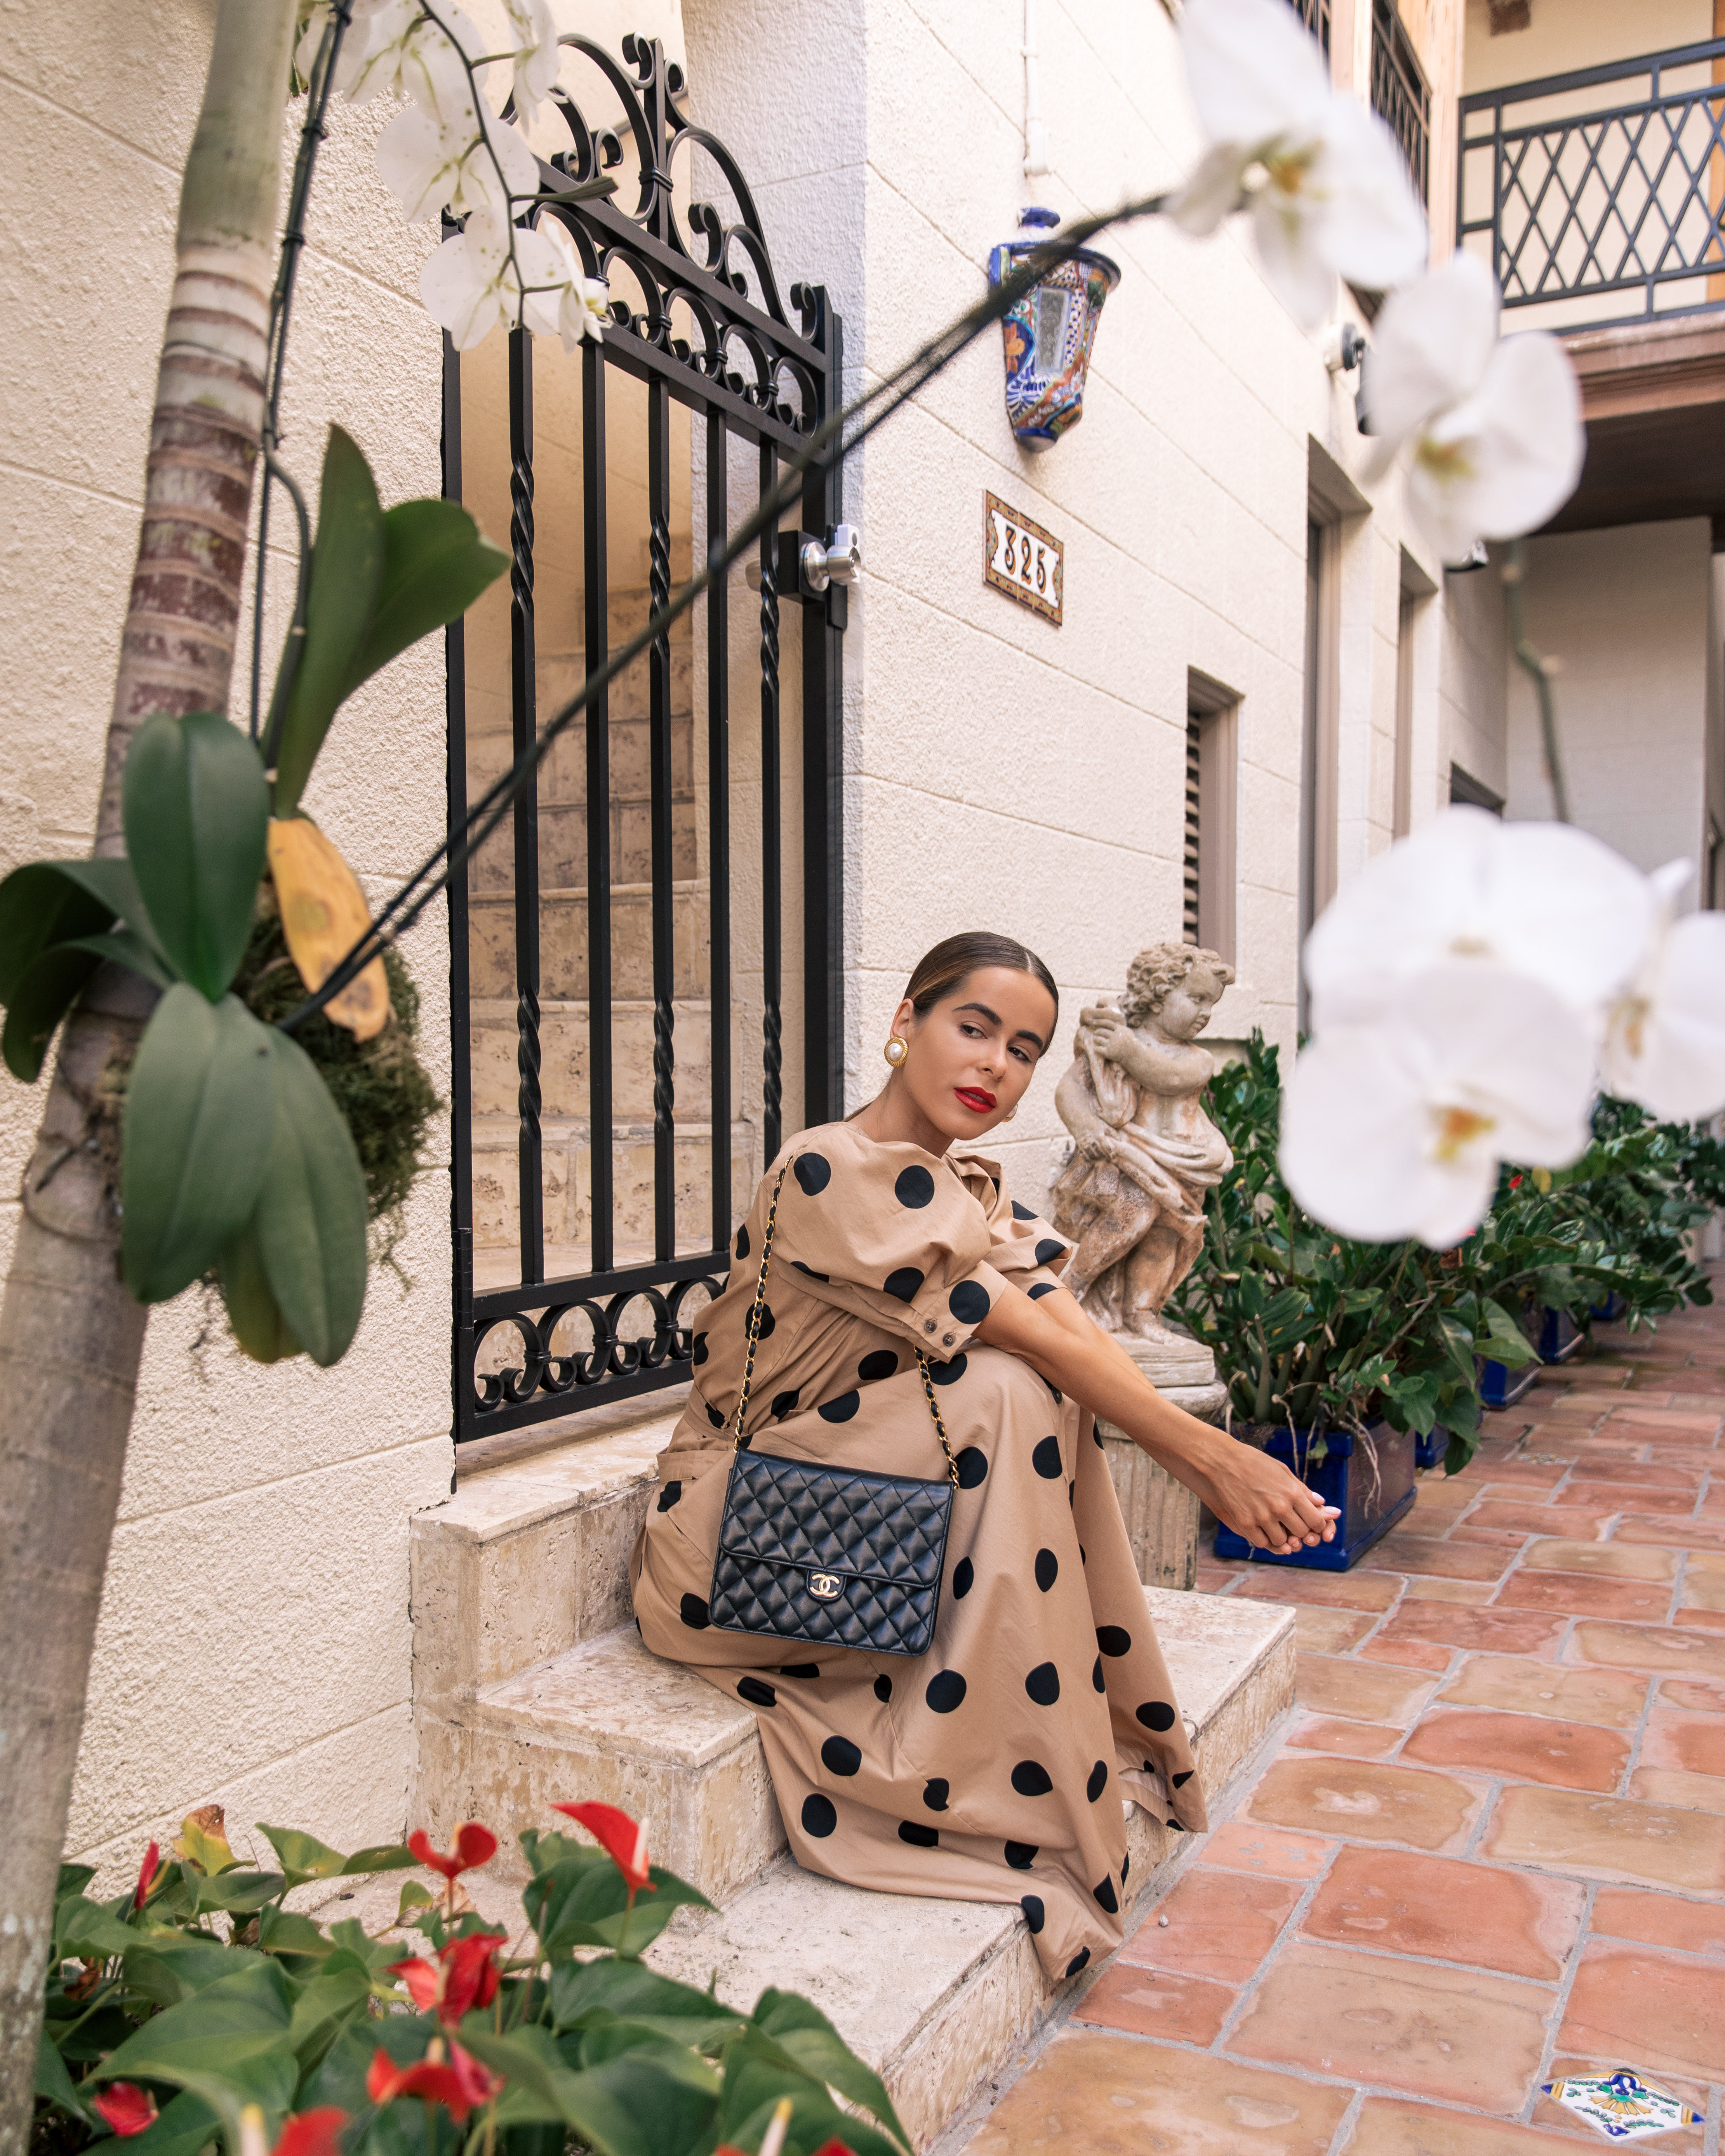 Fashion Blogger Stephanie Hill from The Style Bungalow on Ready for a New Chanel